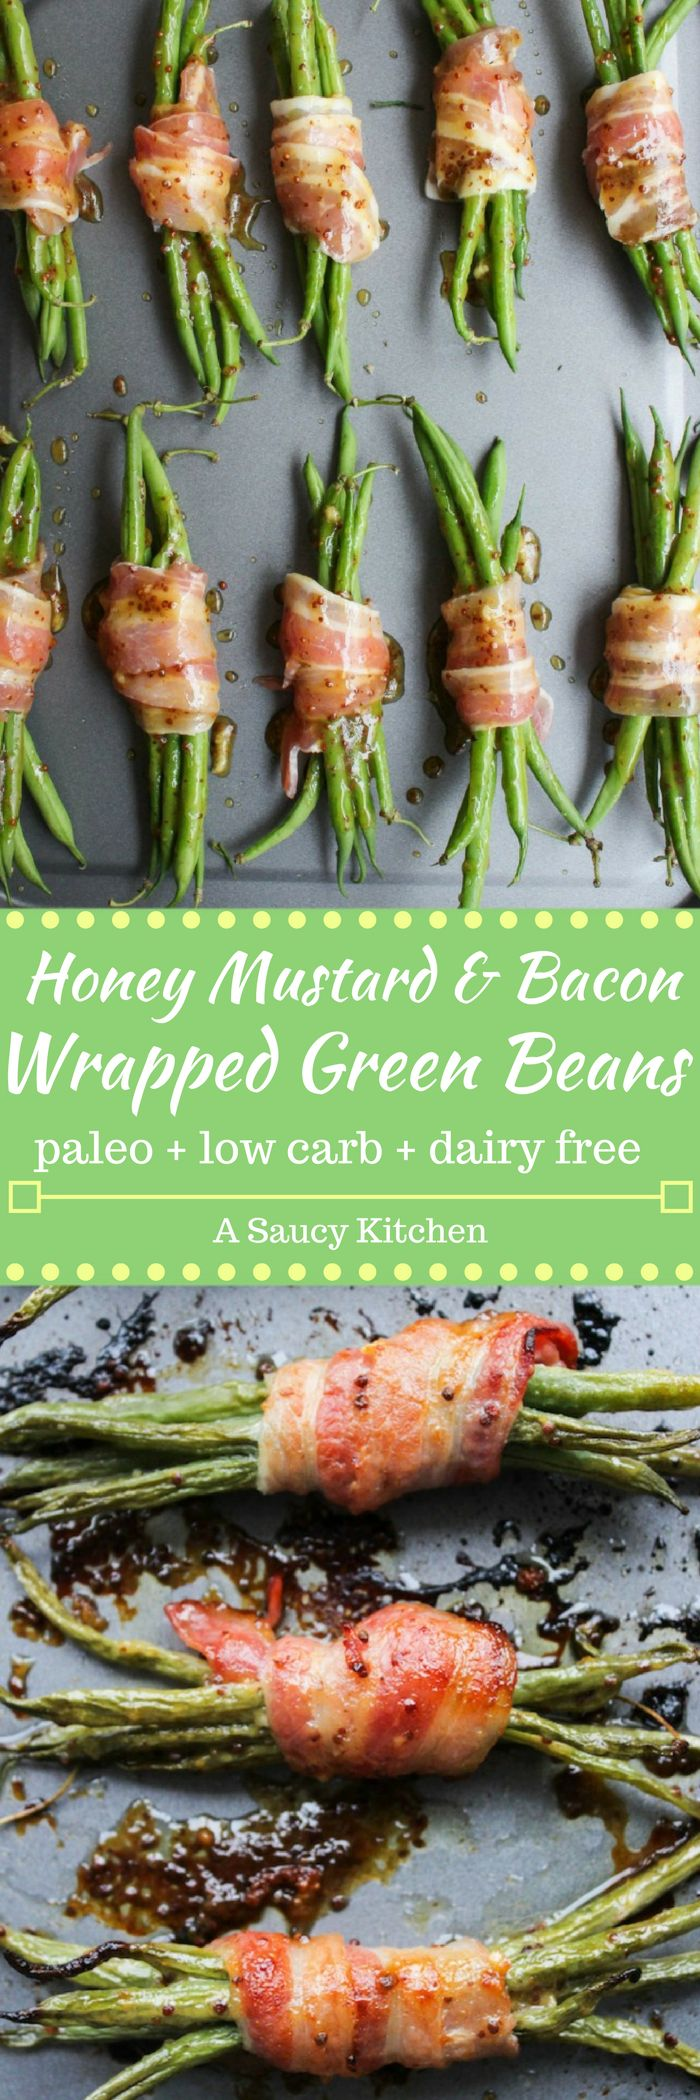 Honey Mustard Bacon Wrapped Green Beans | tender green bean bundles covered in a honey mustard sauce wrapped in bacon | paleo + low carb